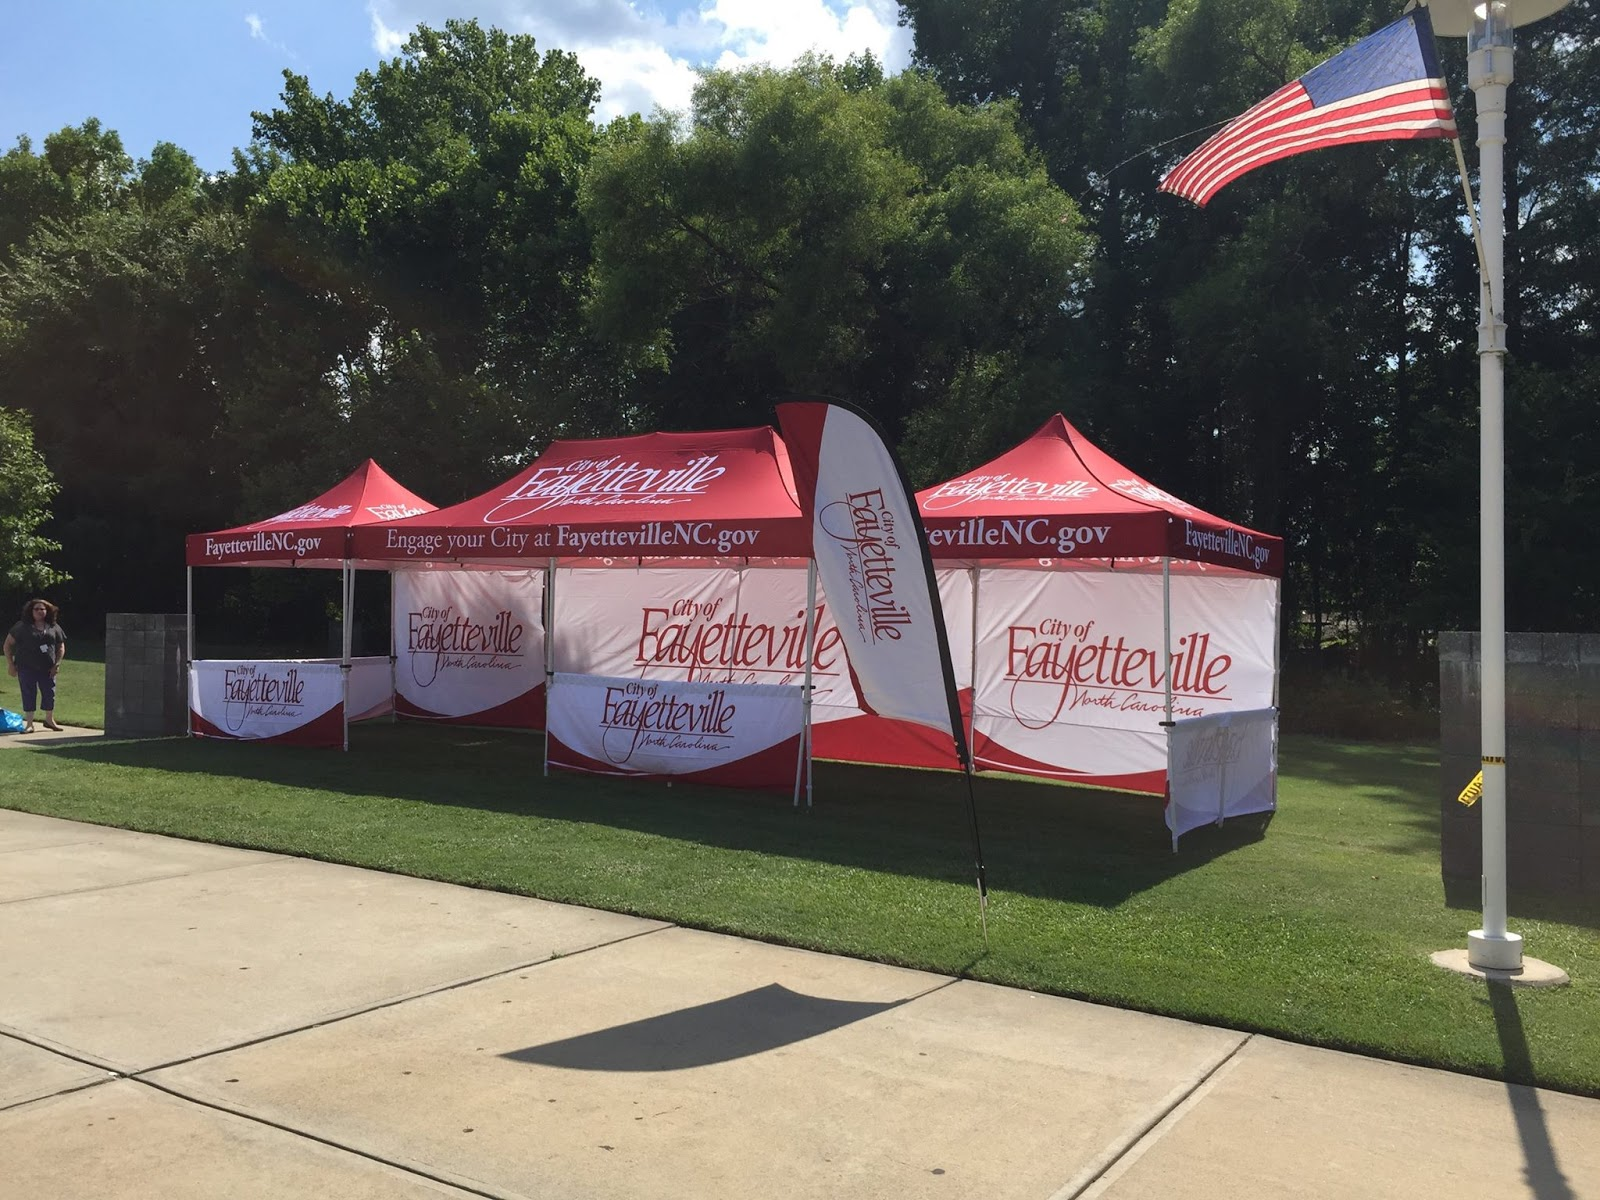 Hereu0027s a sneak peak of some of our recent designs. The images shown below are designs created by Splash Tents Inc. and are owned by Splash Tents Inc. & Pop Up Custom Tents with Graphics and More: Our DESIGNS for Popup ...